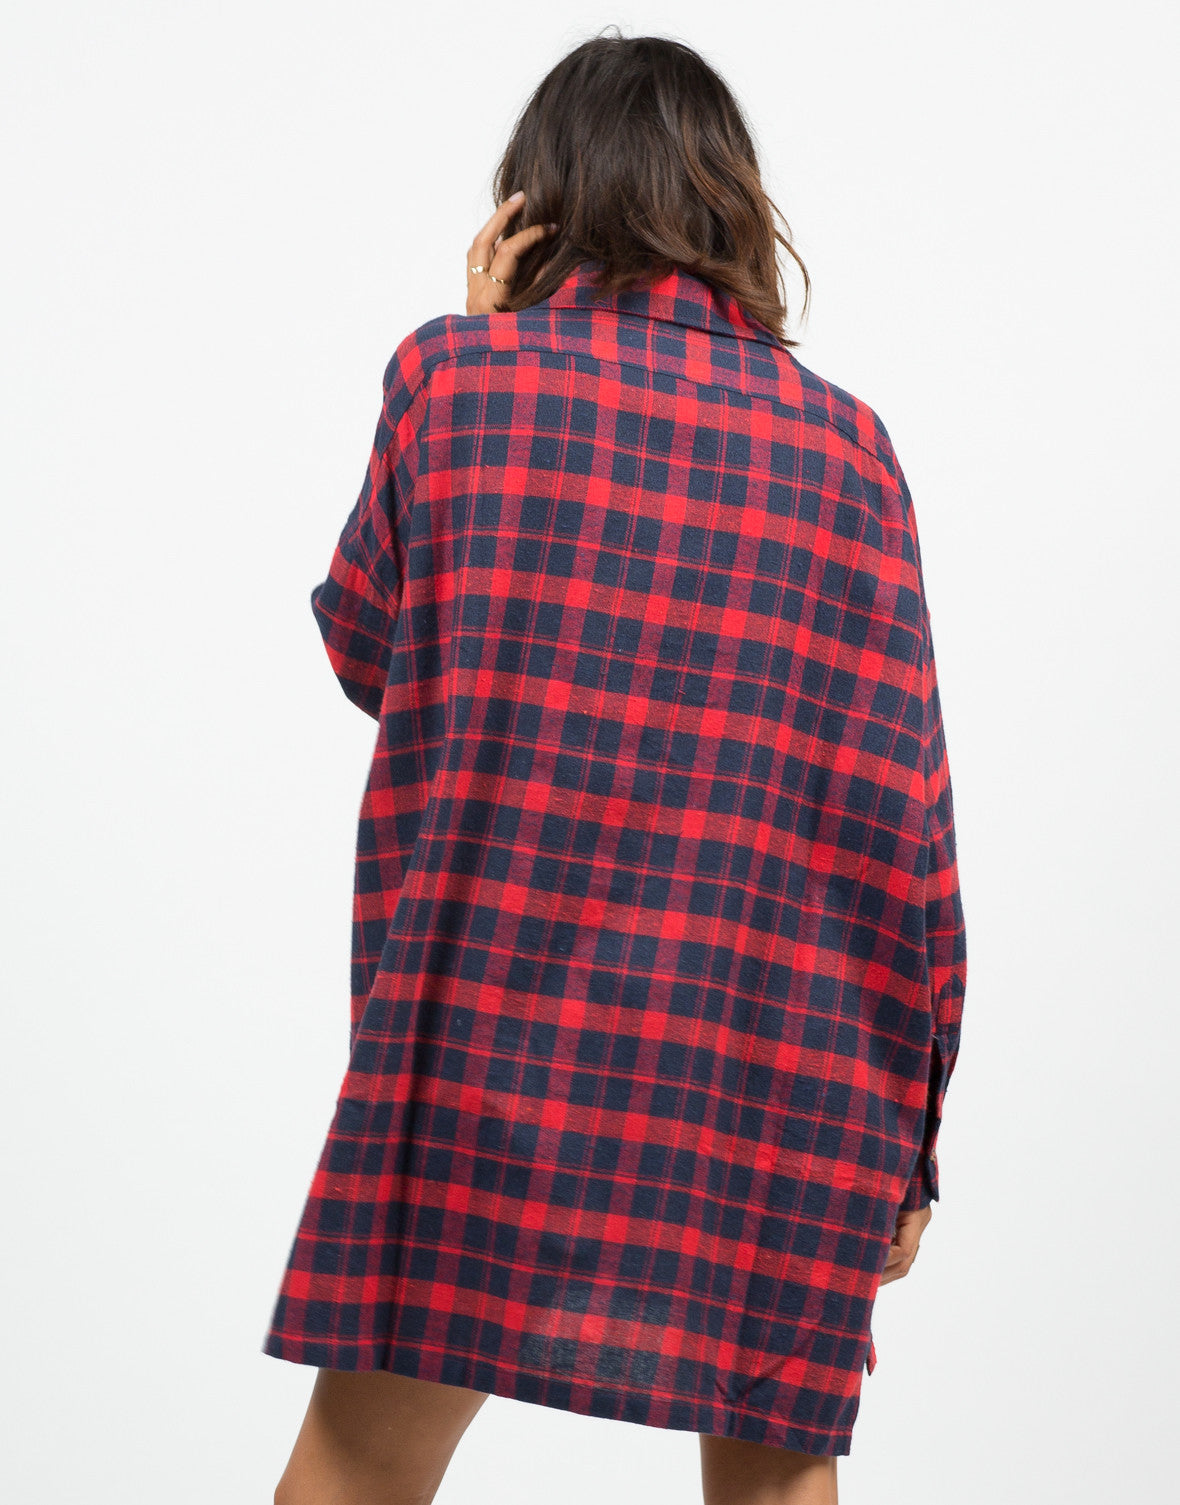 Back View of Oversized Plaid Shirt Dress